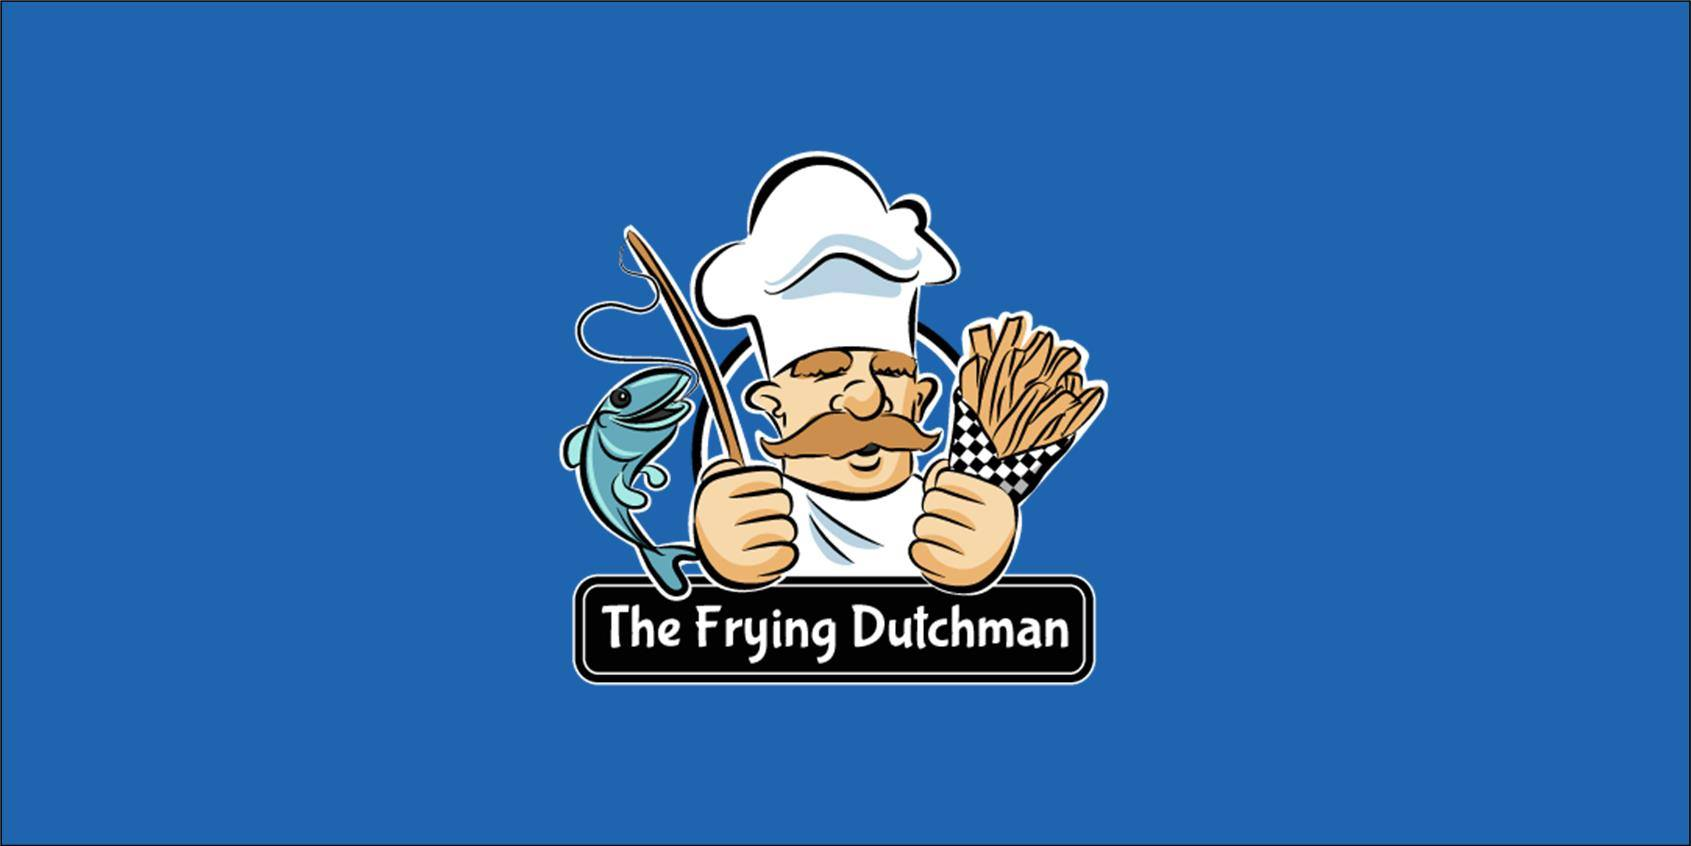 The-Frying-Dutchman-MiltonWA.jpg